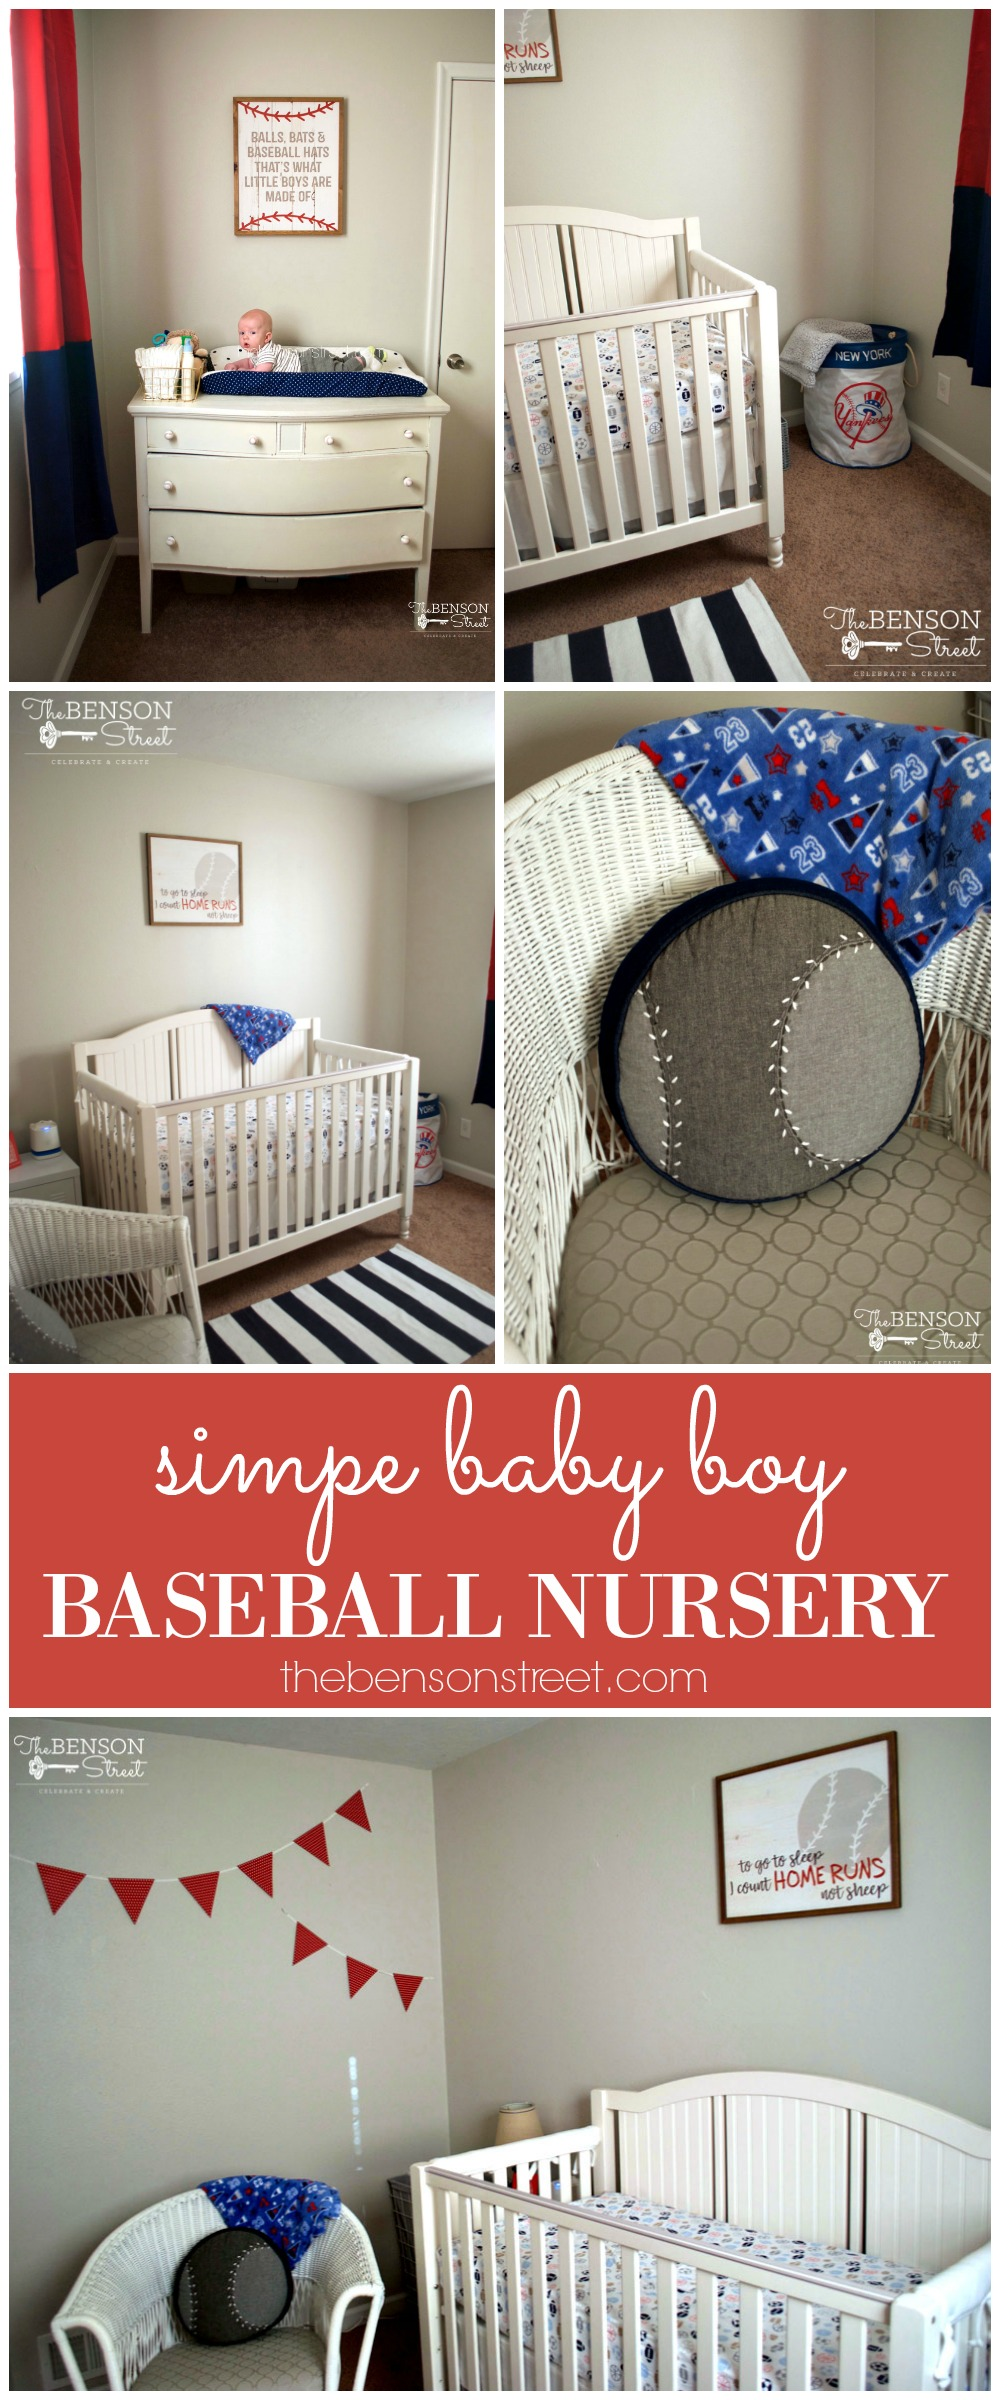 An adorable theme for a baby boy's nursery is baseball or sports themed. Check out this cute and simple baby boy baseball nursery by thebensonstreet.com #baseballnursery #babyboynursery #boynursery #babyroom #sportsnursery #sportynursery #sportybabyboynursery #nurserydecor #babydecor #thebensonstreet